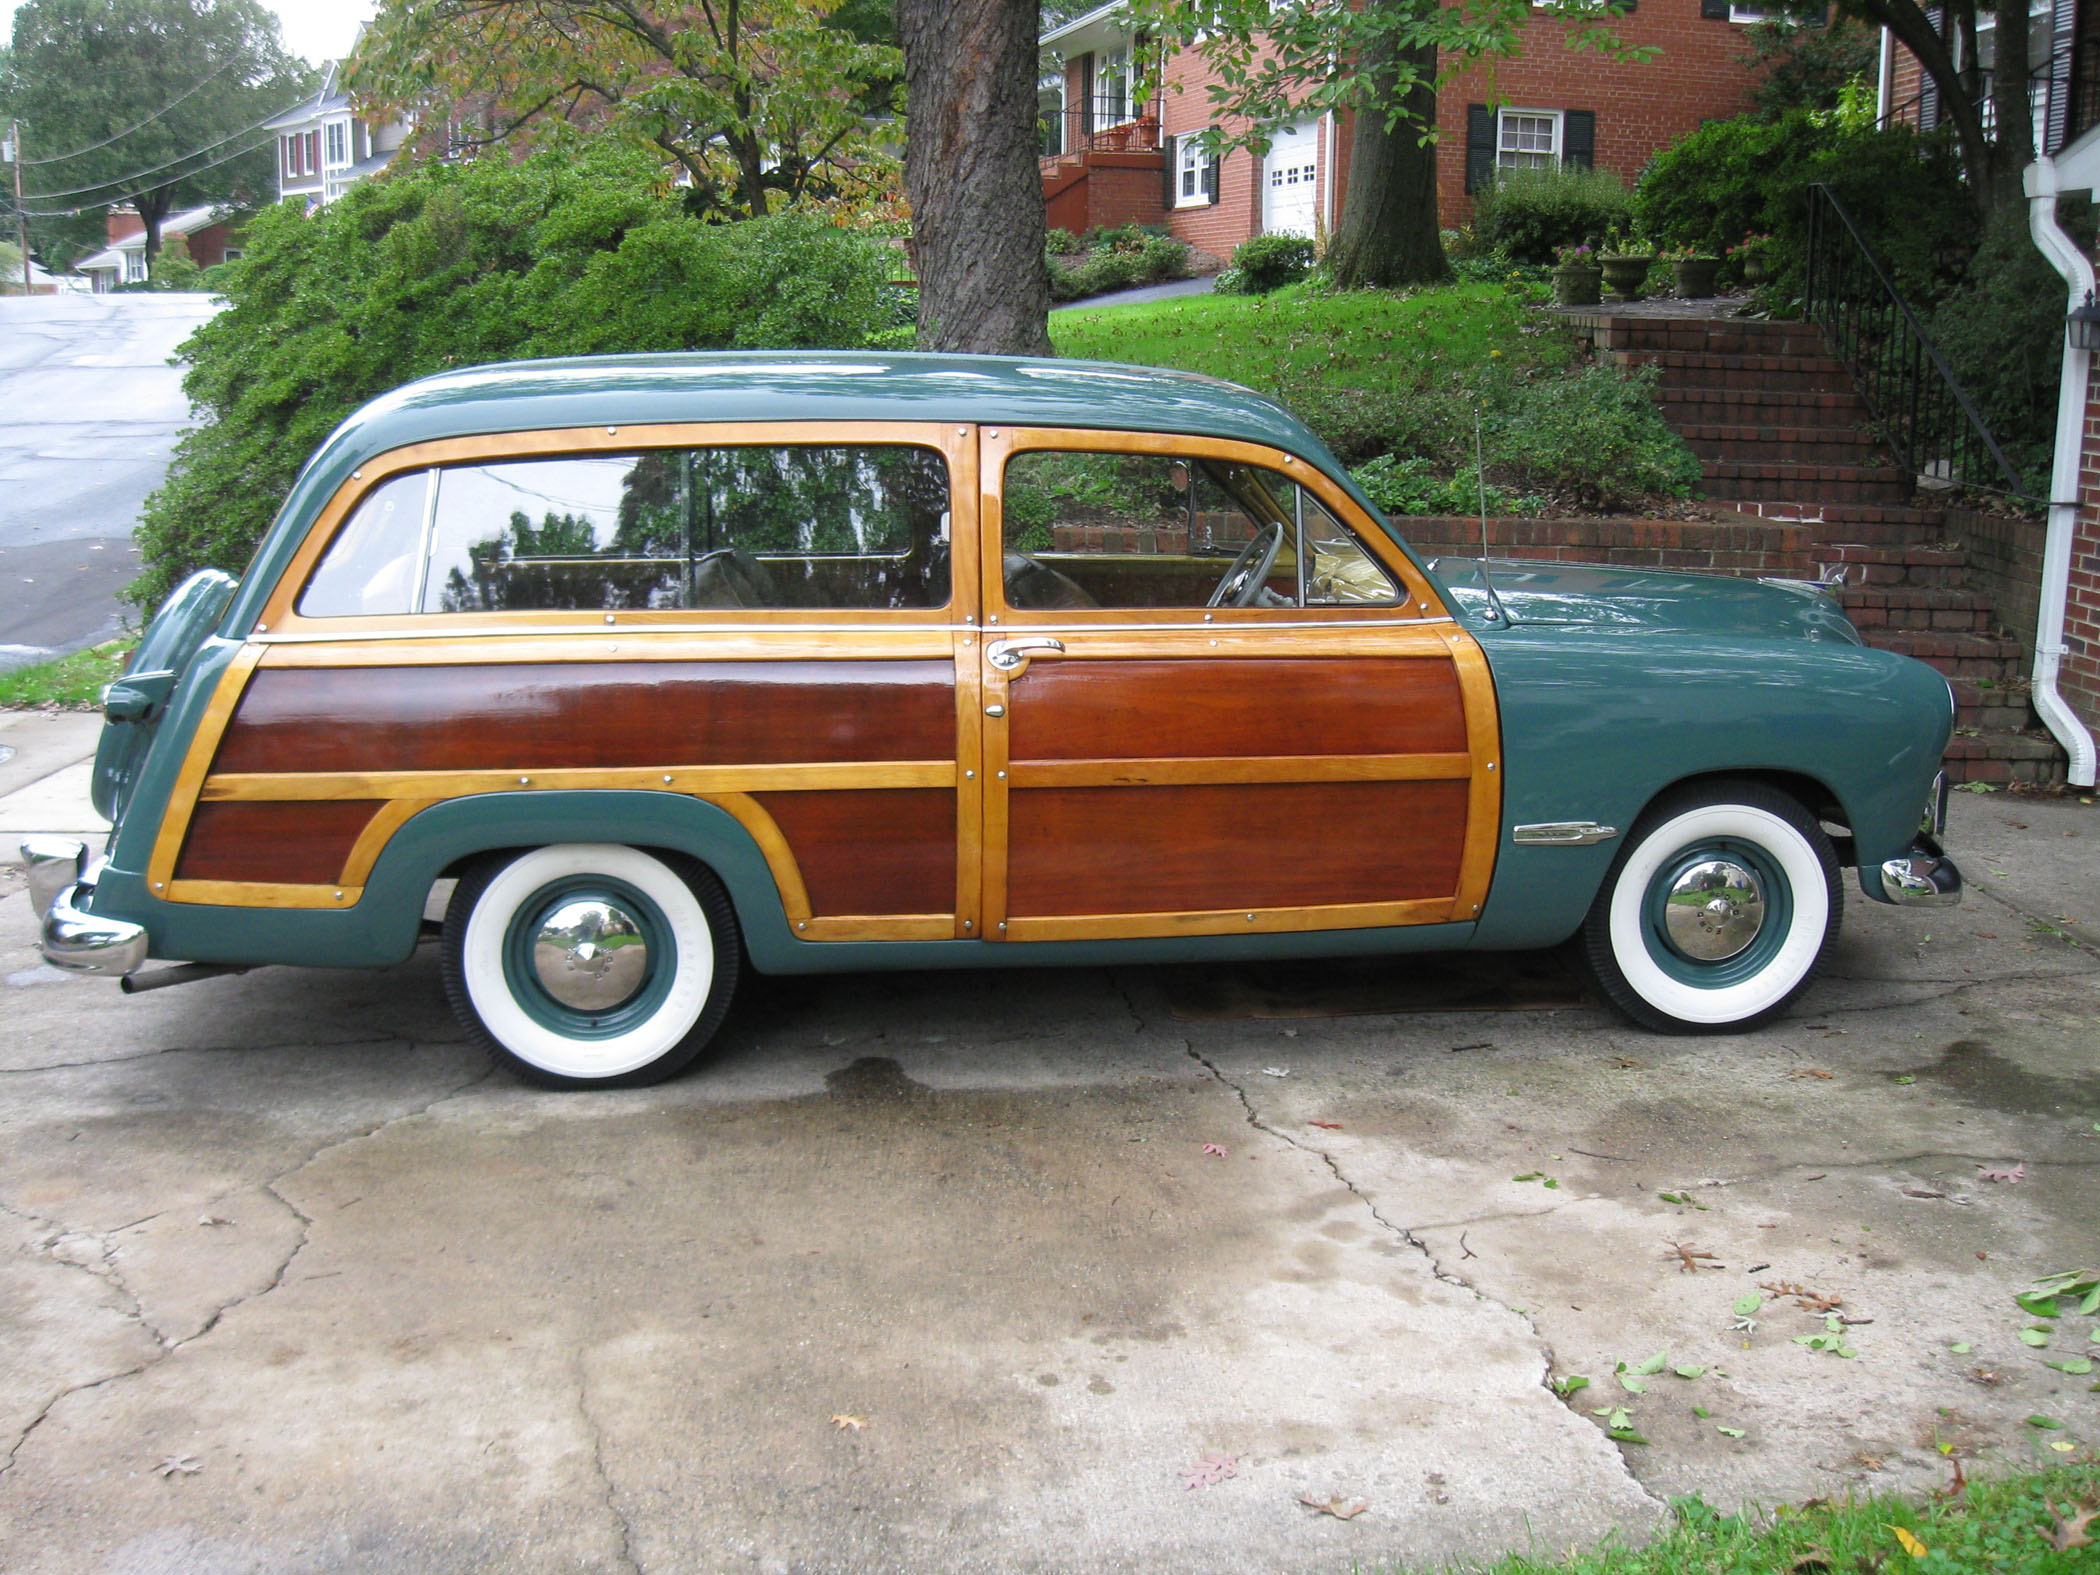 A total of 31412 two door eight passenger custom ford station wagons were produced